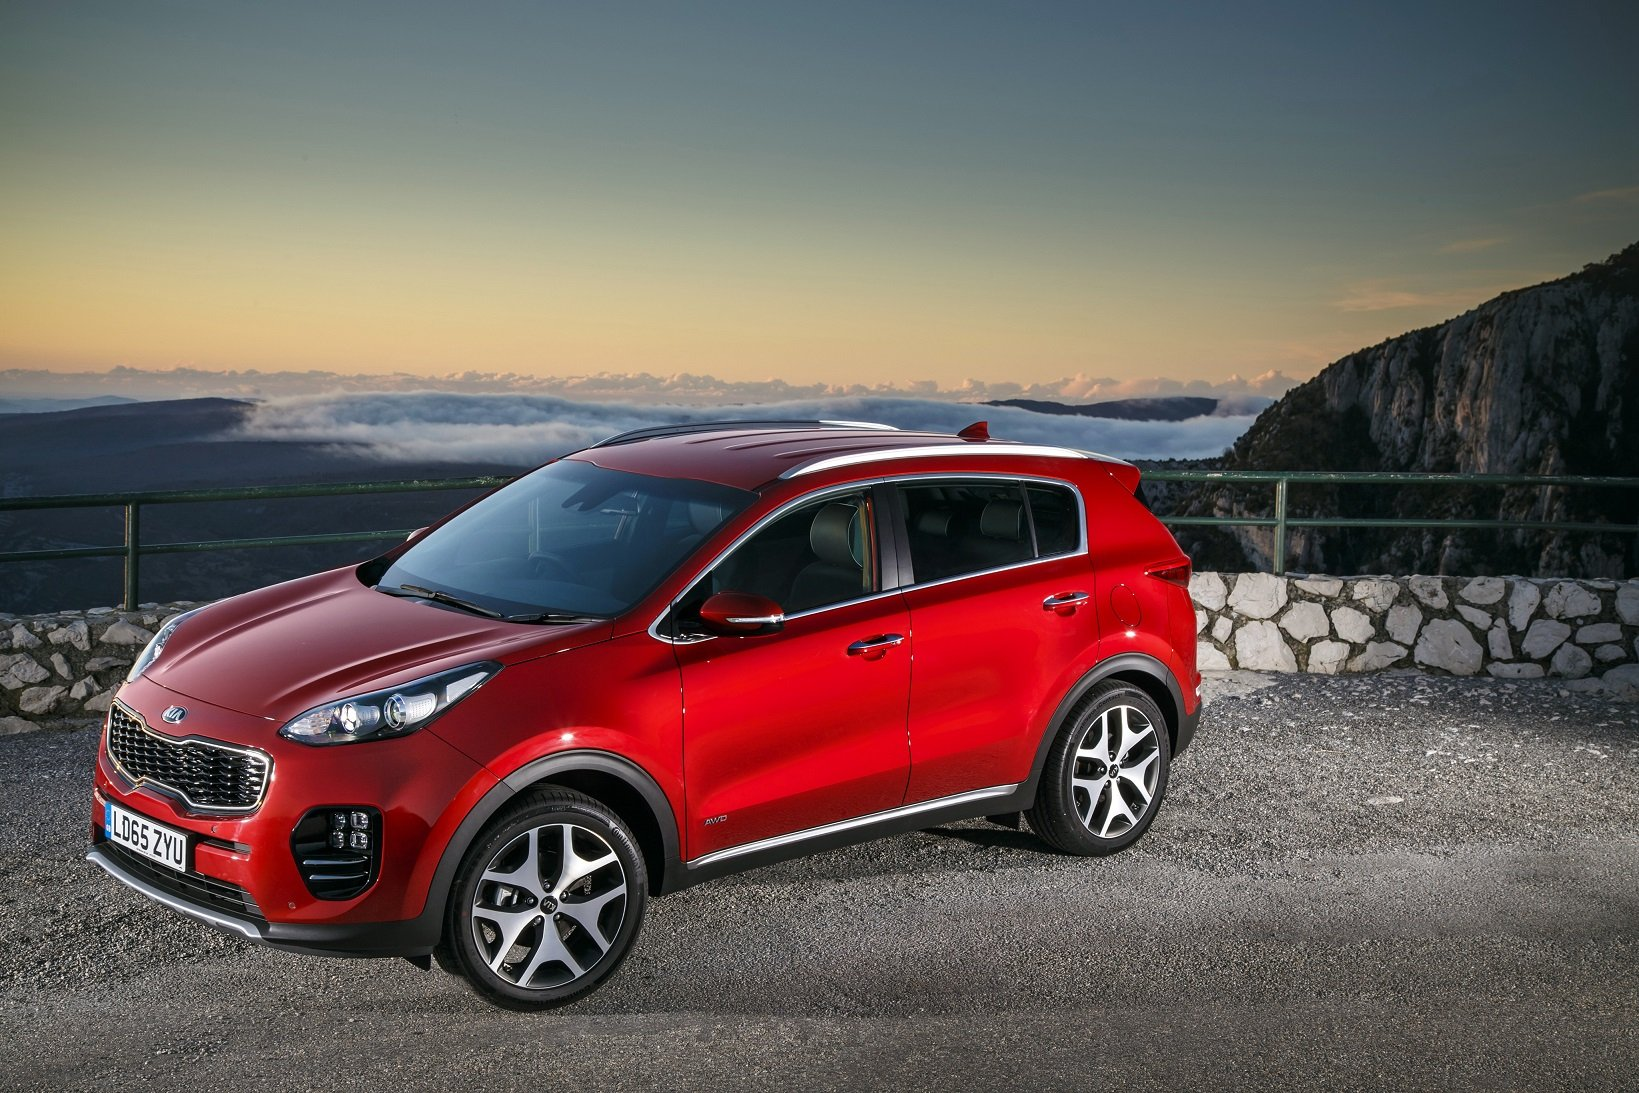 2016 cars uk version kia sportage suv gt line red wallpaper 1639x1093 887258 wallpaperup. Black Bedroom Furniture Sets. Home Design Ideas